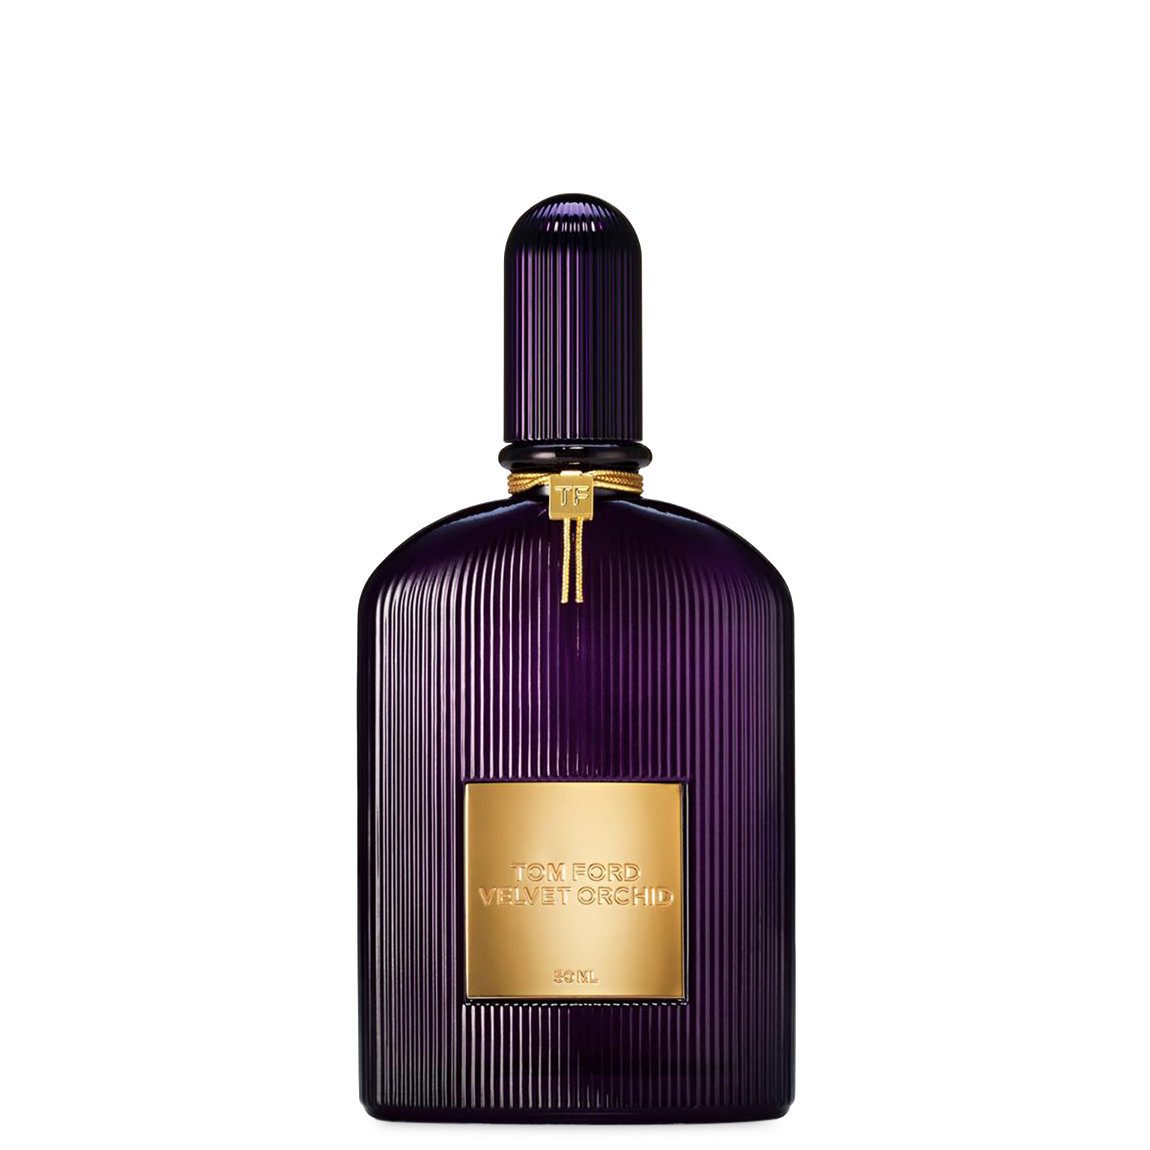 TOM FORD Velvet Orchid  50 ml alternative view 1 - product swatch.